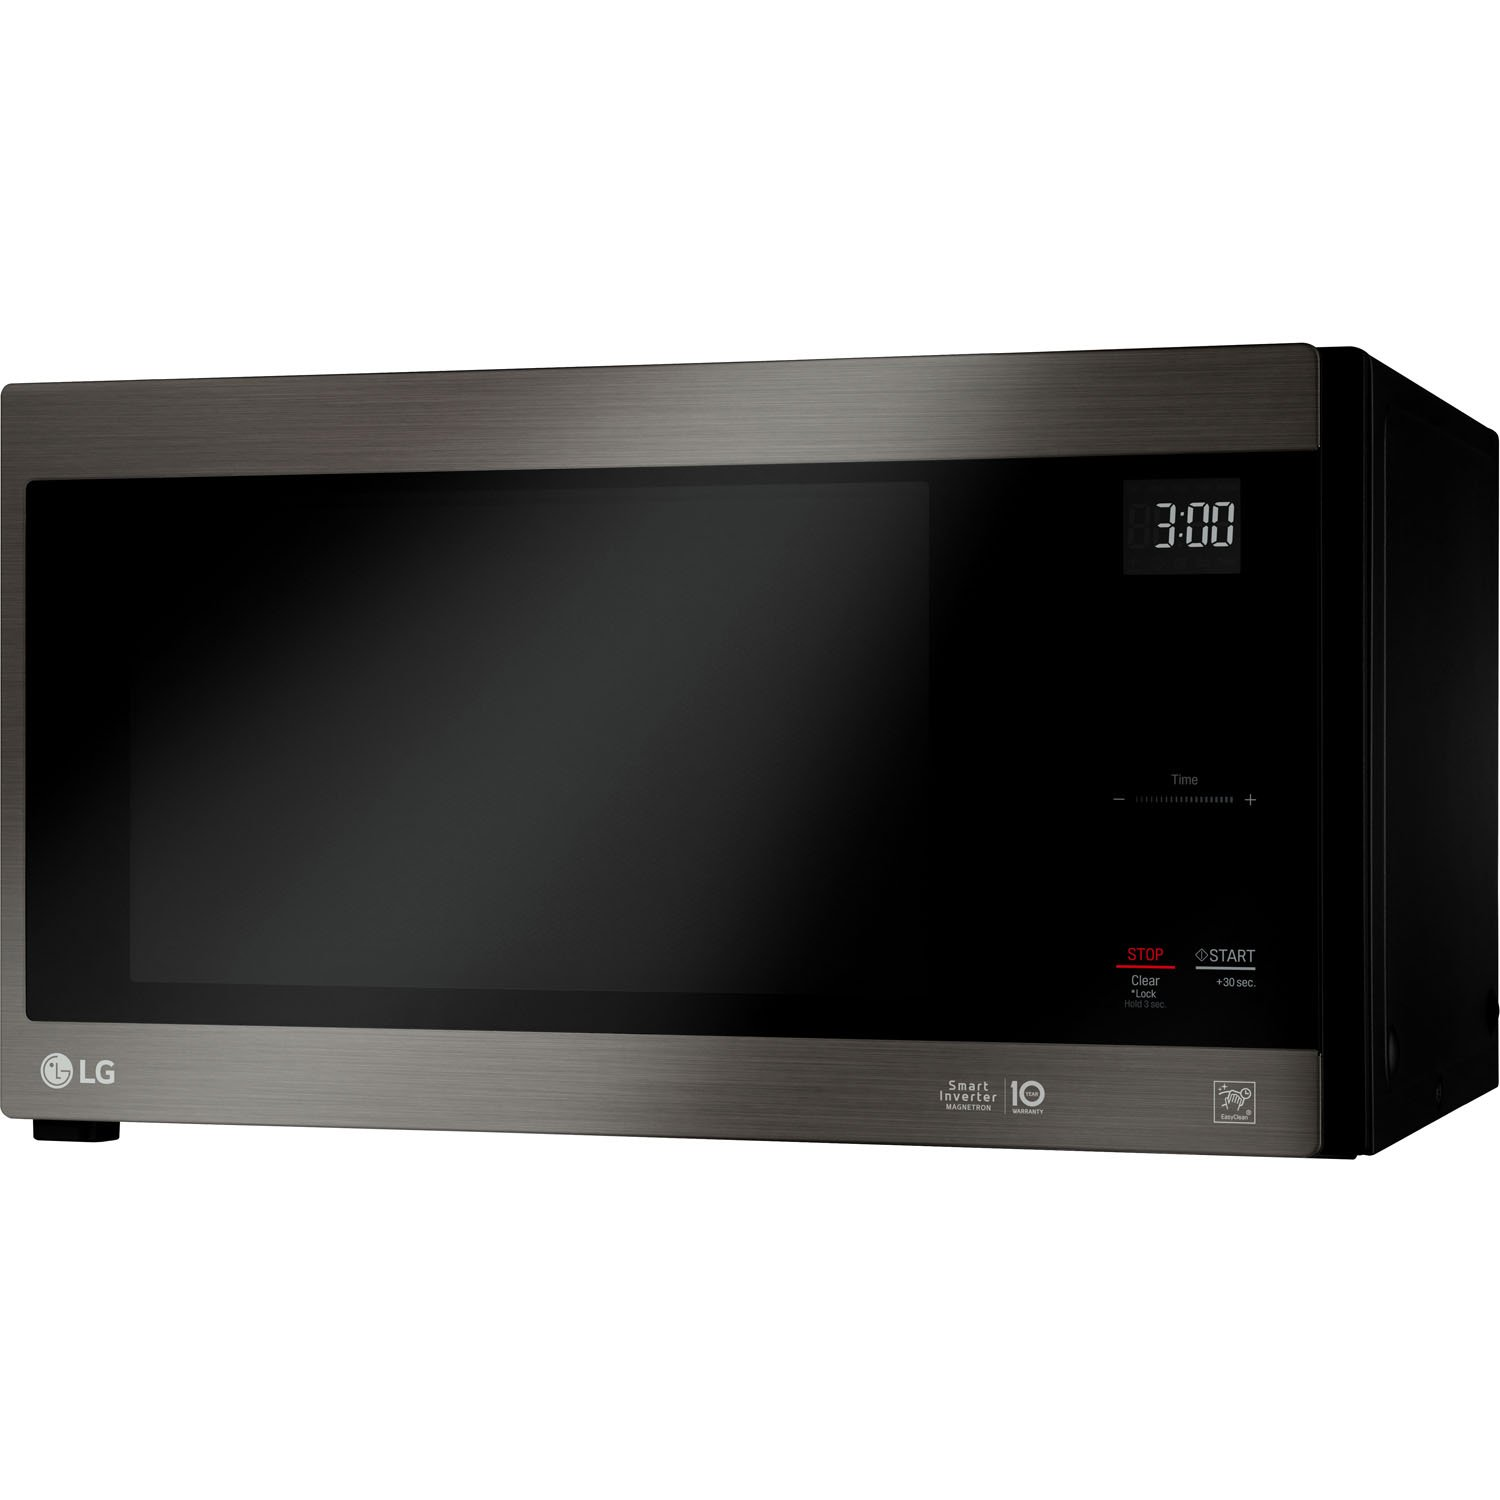 LG Black Stainless Steel Series 1.5 cu. ft. NeoChef™ Countertop Microwave with Smart Inverter and EasyClean